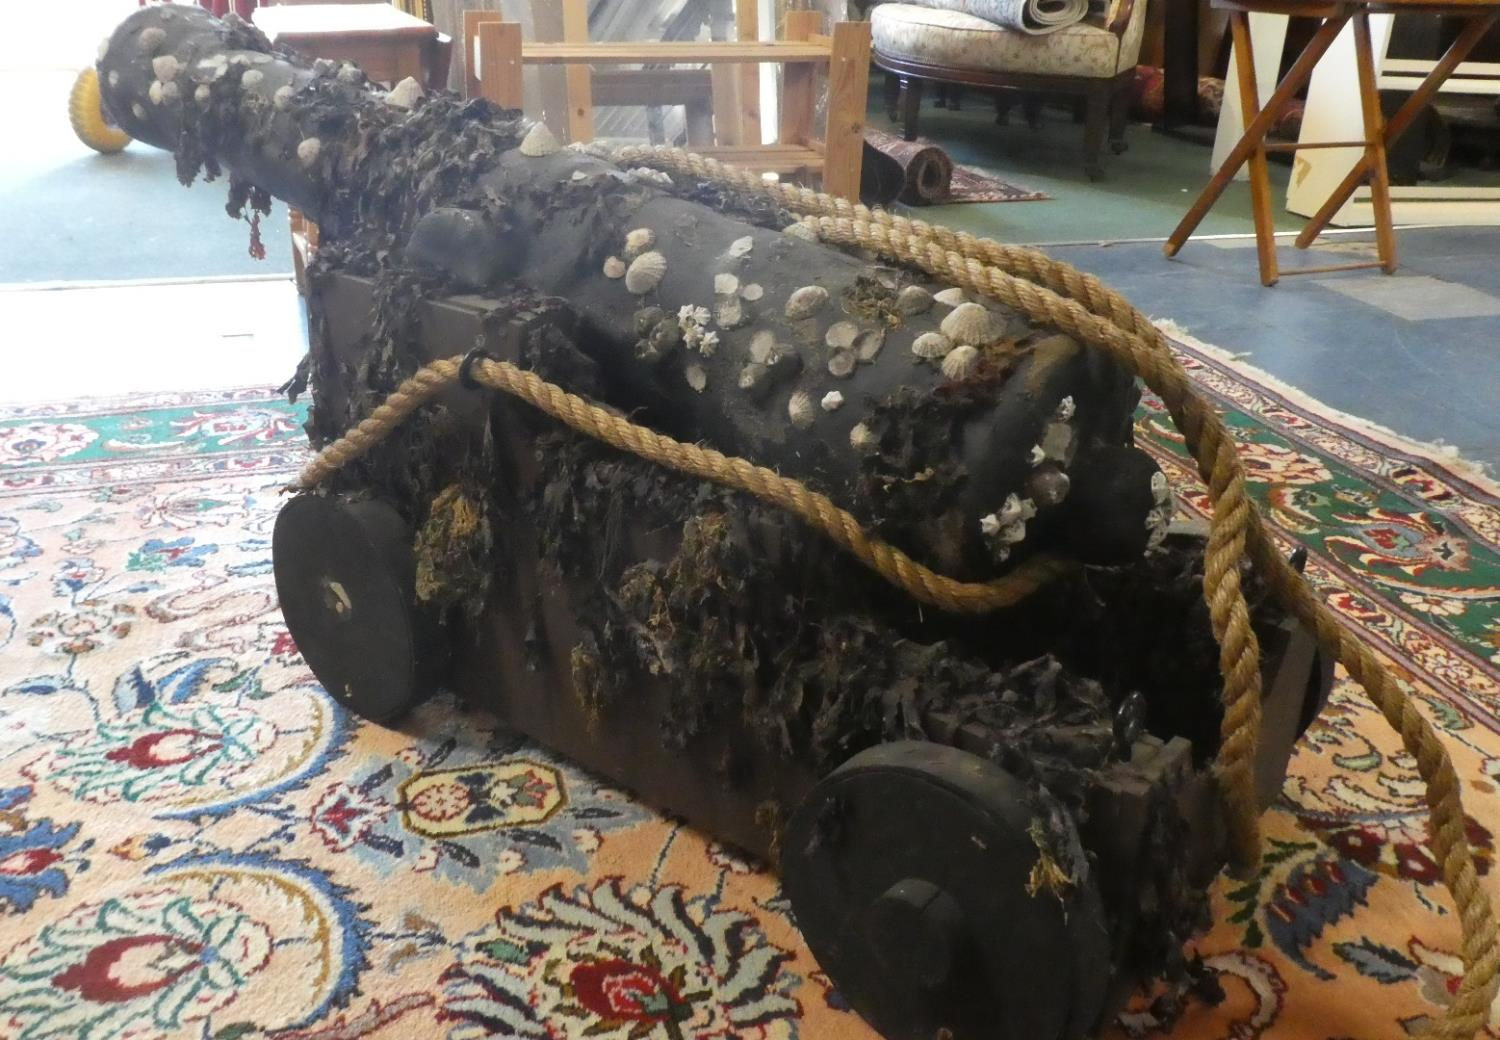 Lot 140 - A Pair of Stage or Film Props in the Form of Ship's Cannons on Carriages with Ropes, Seaweed,